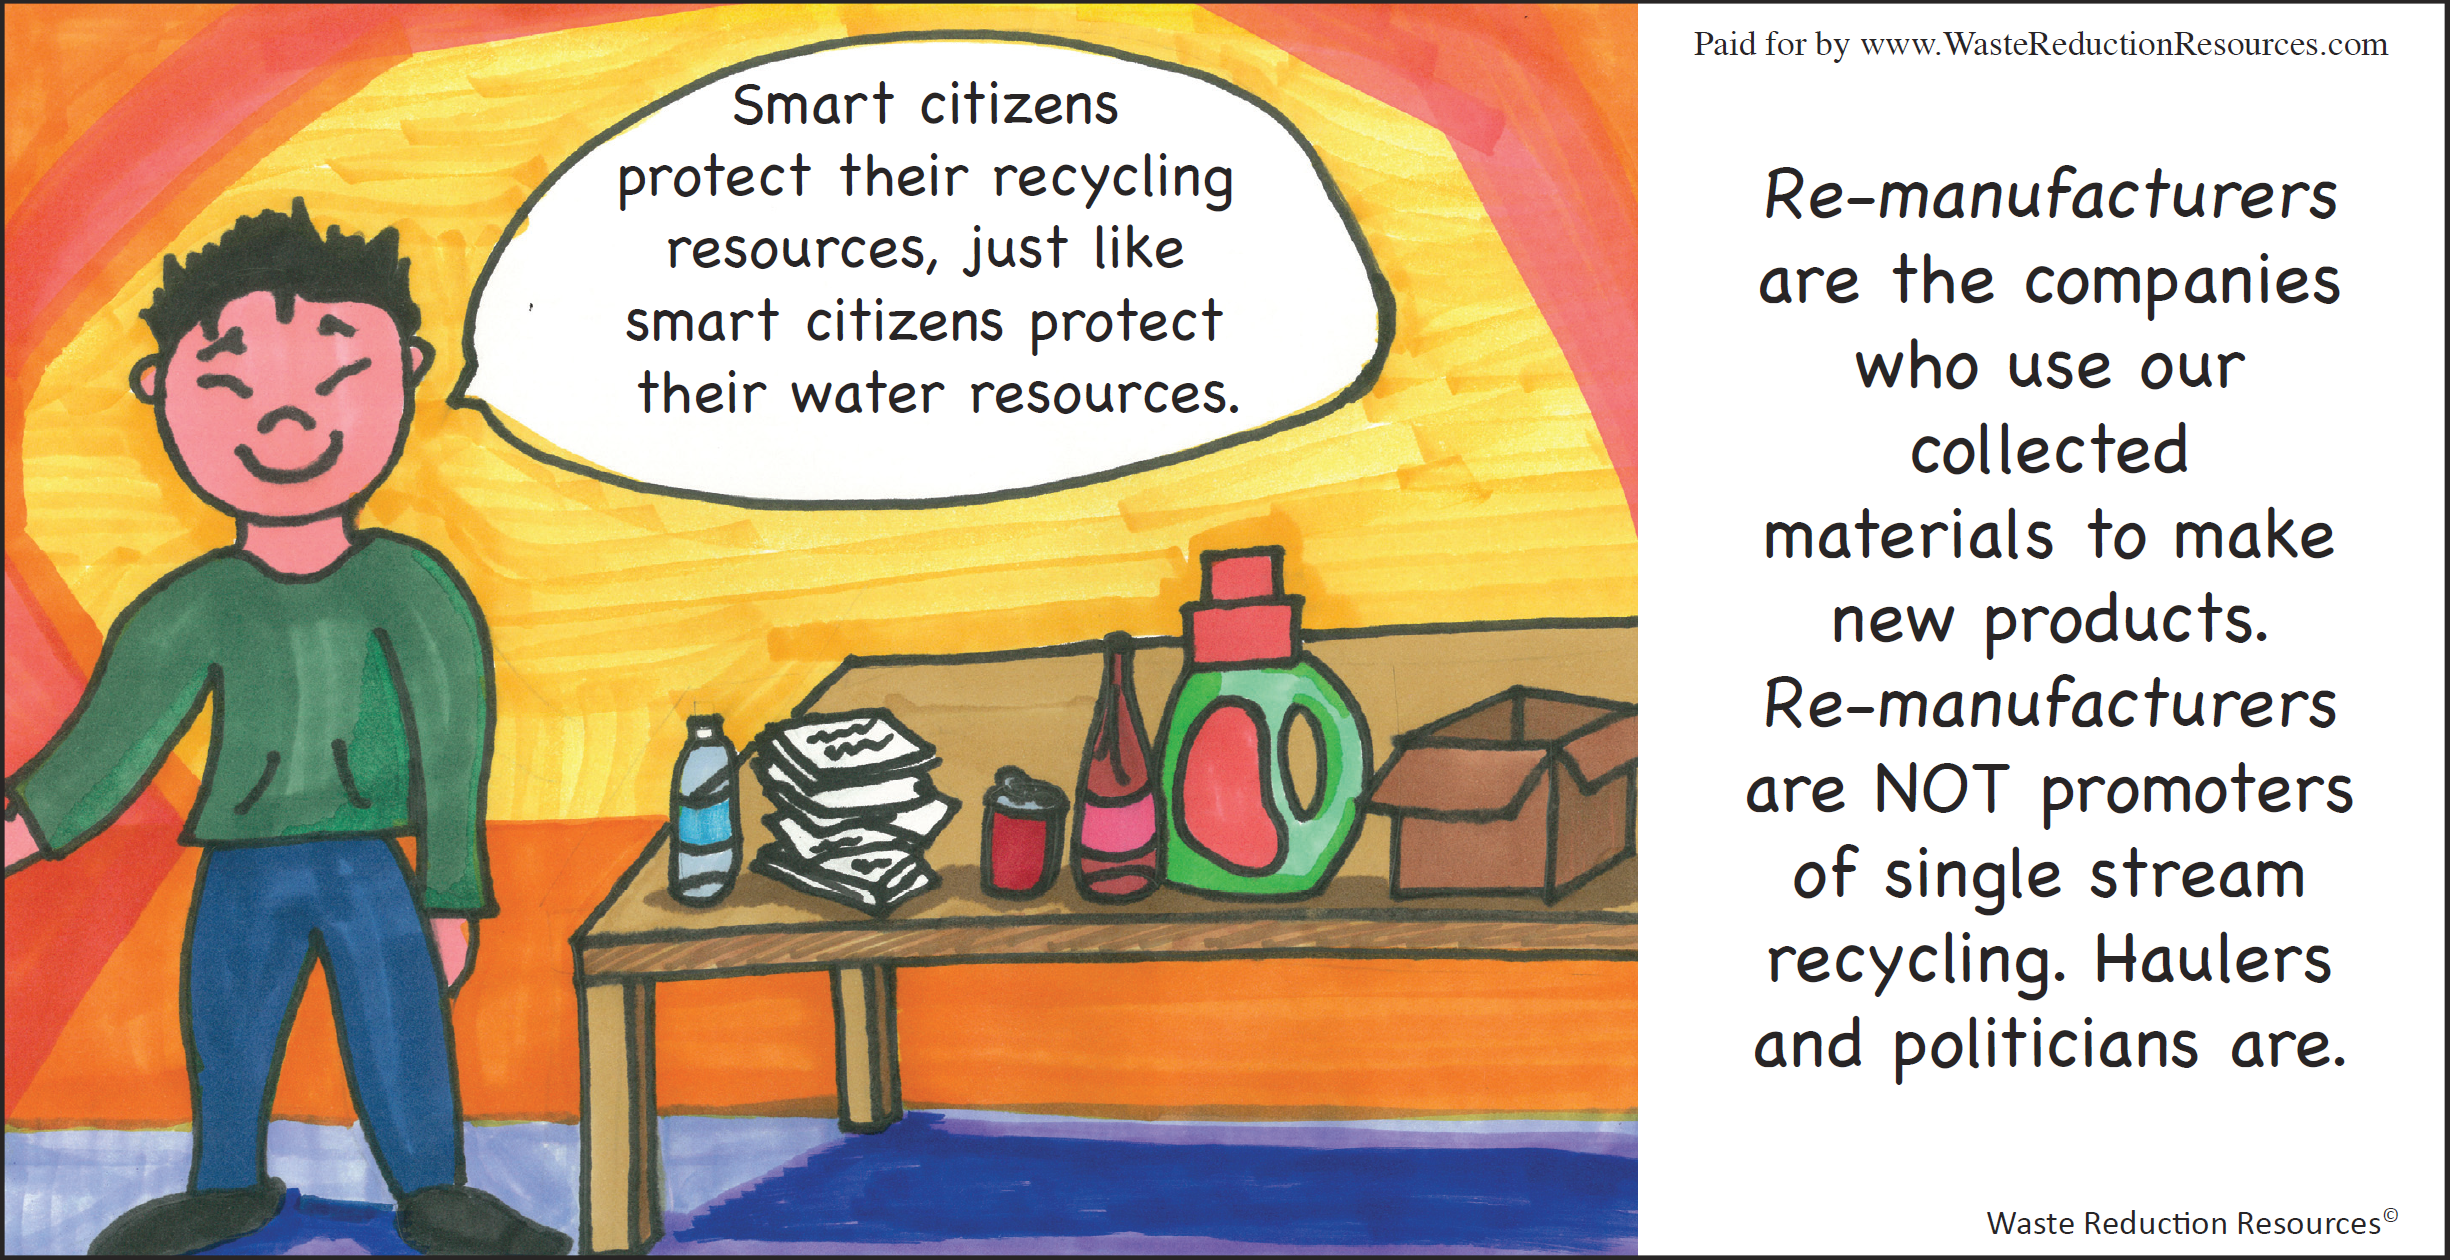 Smart citizens protect their recycling resources, just like smart citizens protect their water resources.